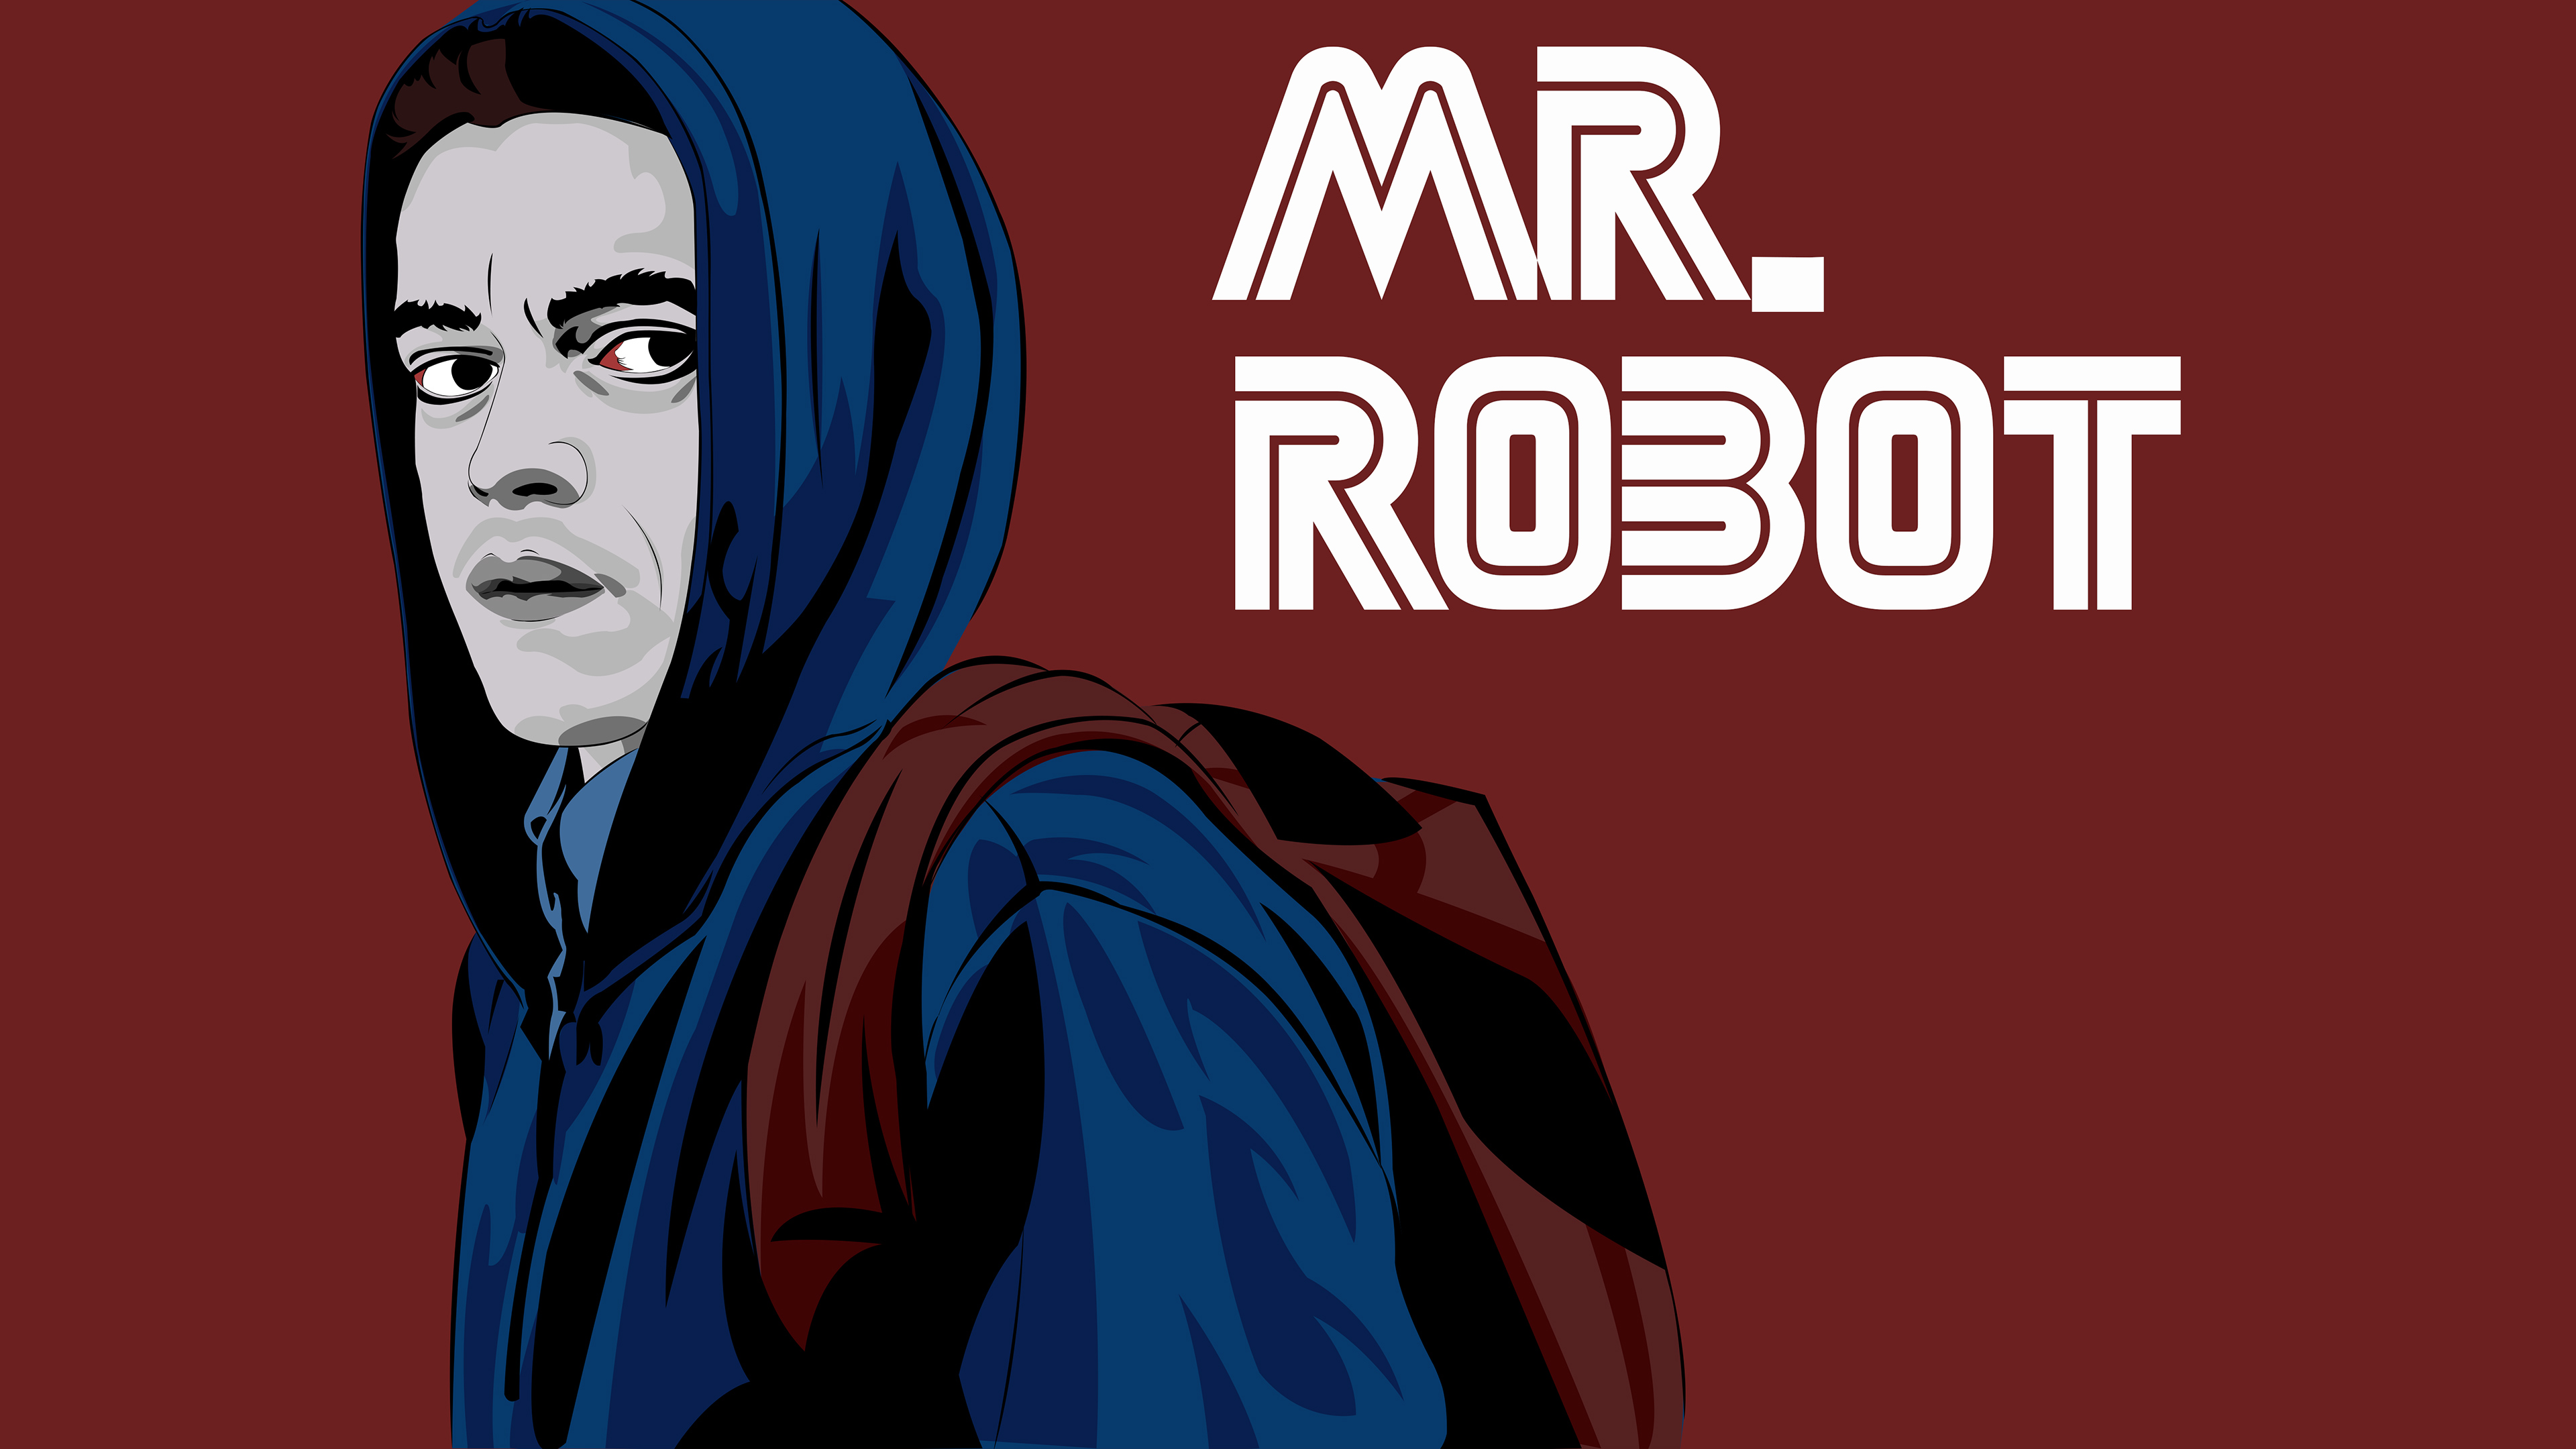 1920x1080 Mr Robot 4k Laptop Full Hd 1080p Hd 4k Wallpapers